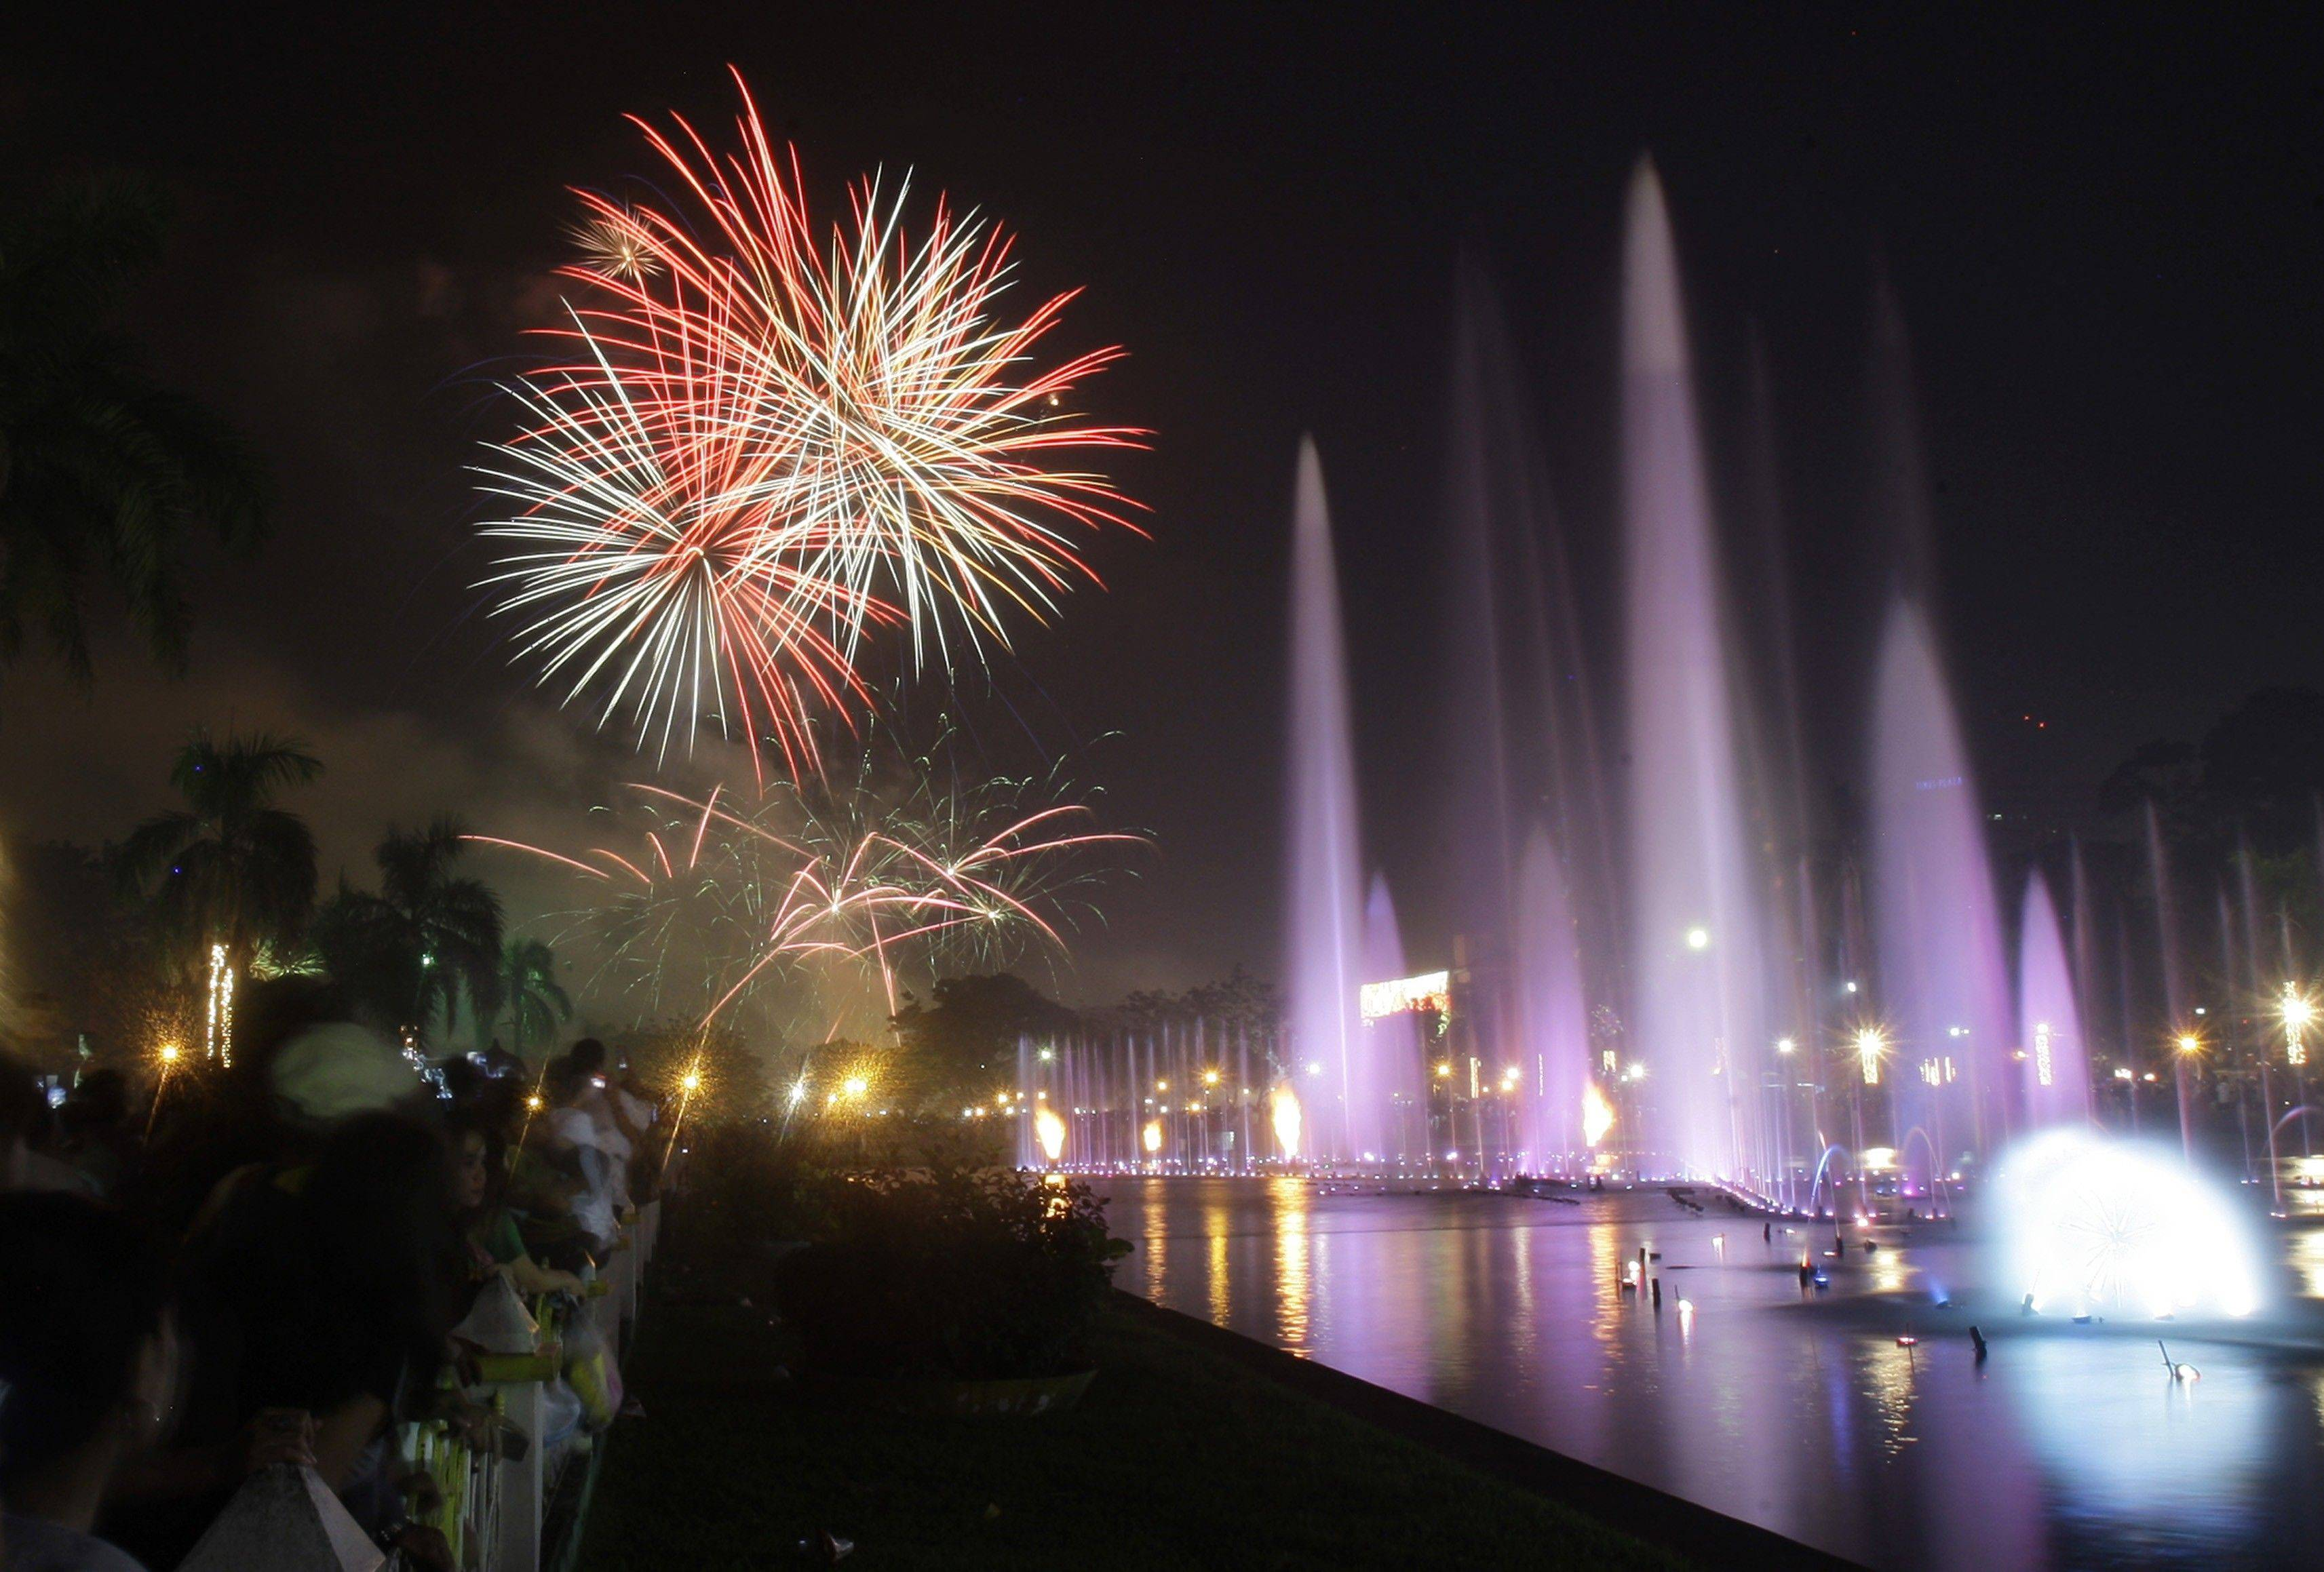 Filipinos watch a fireworks and water fountain display as they welcome the New Year at Manila's Rizal Park, Philippines on Sunday Jan. 1, 2012. More than 200 people have been injured by illegal firecrackers and celebratory gunfire in the Philippines despite a government scare campaign against reckless New Year revelries, officials recently said.